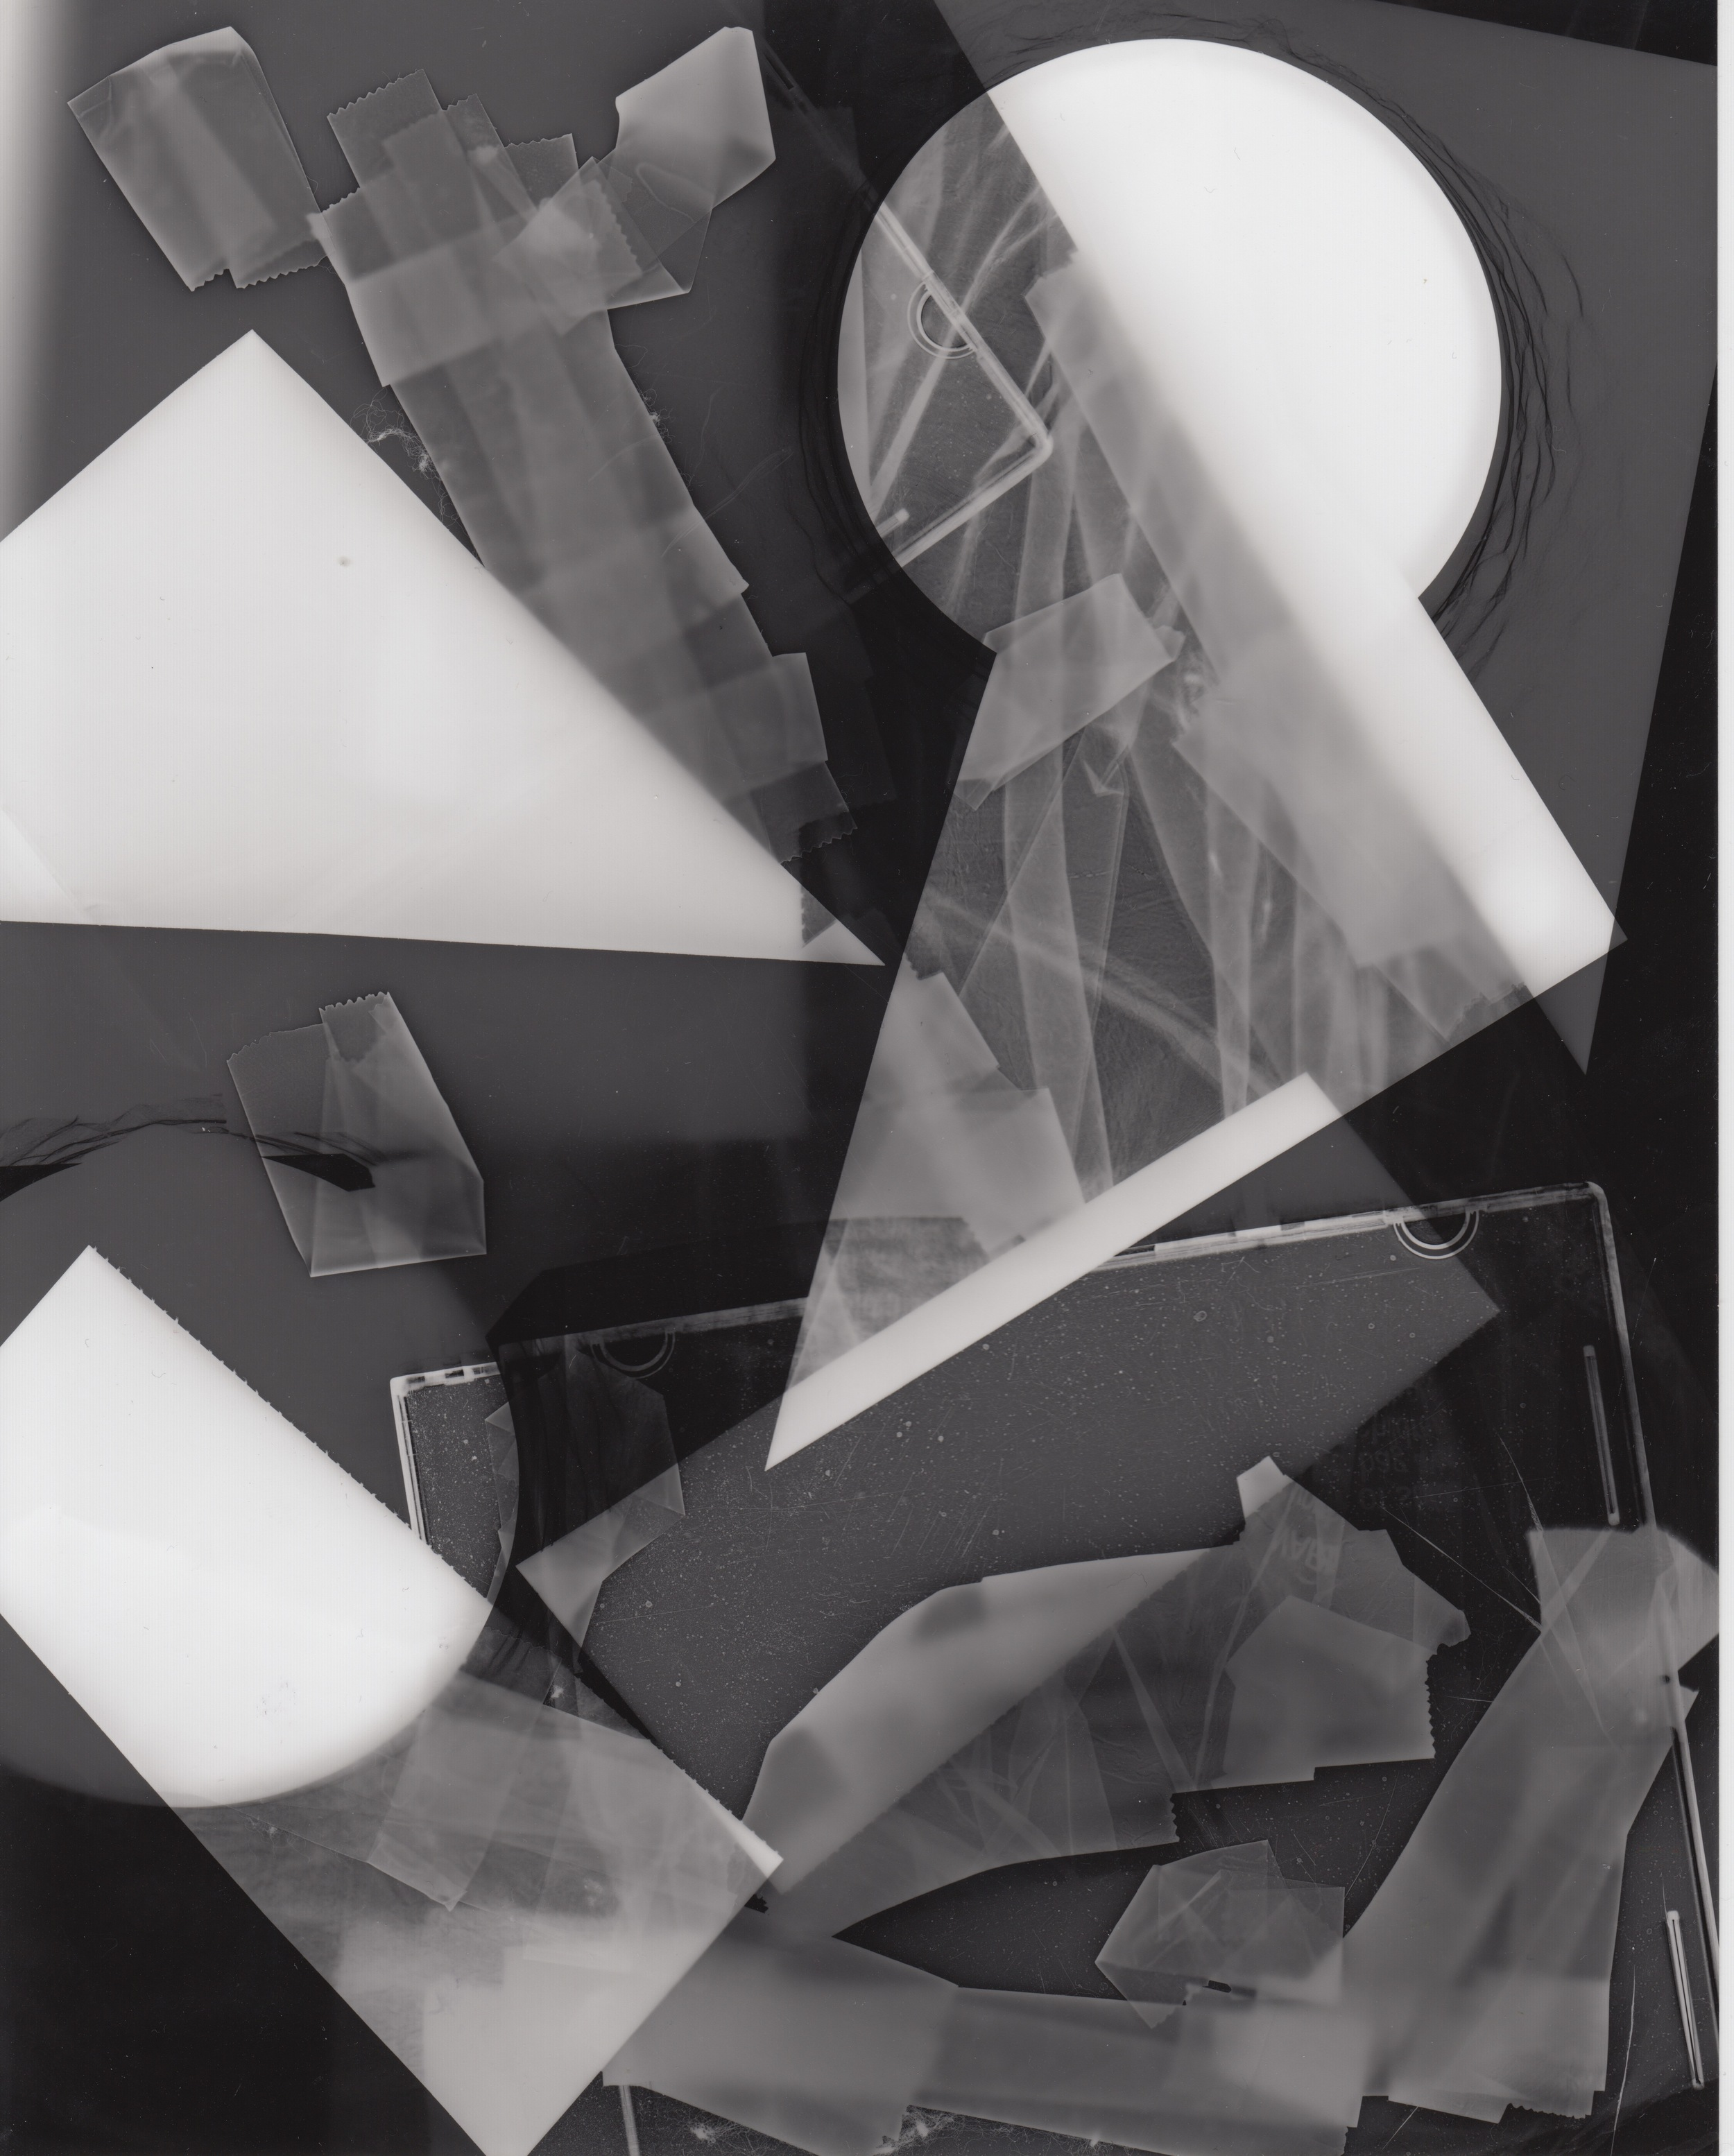 Object Collage - Photogram